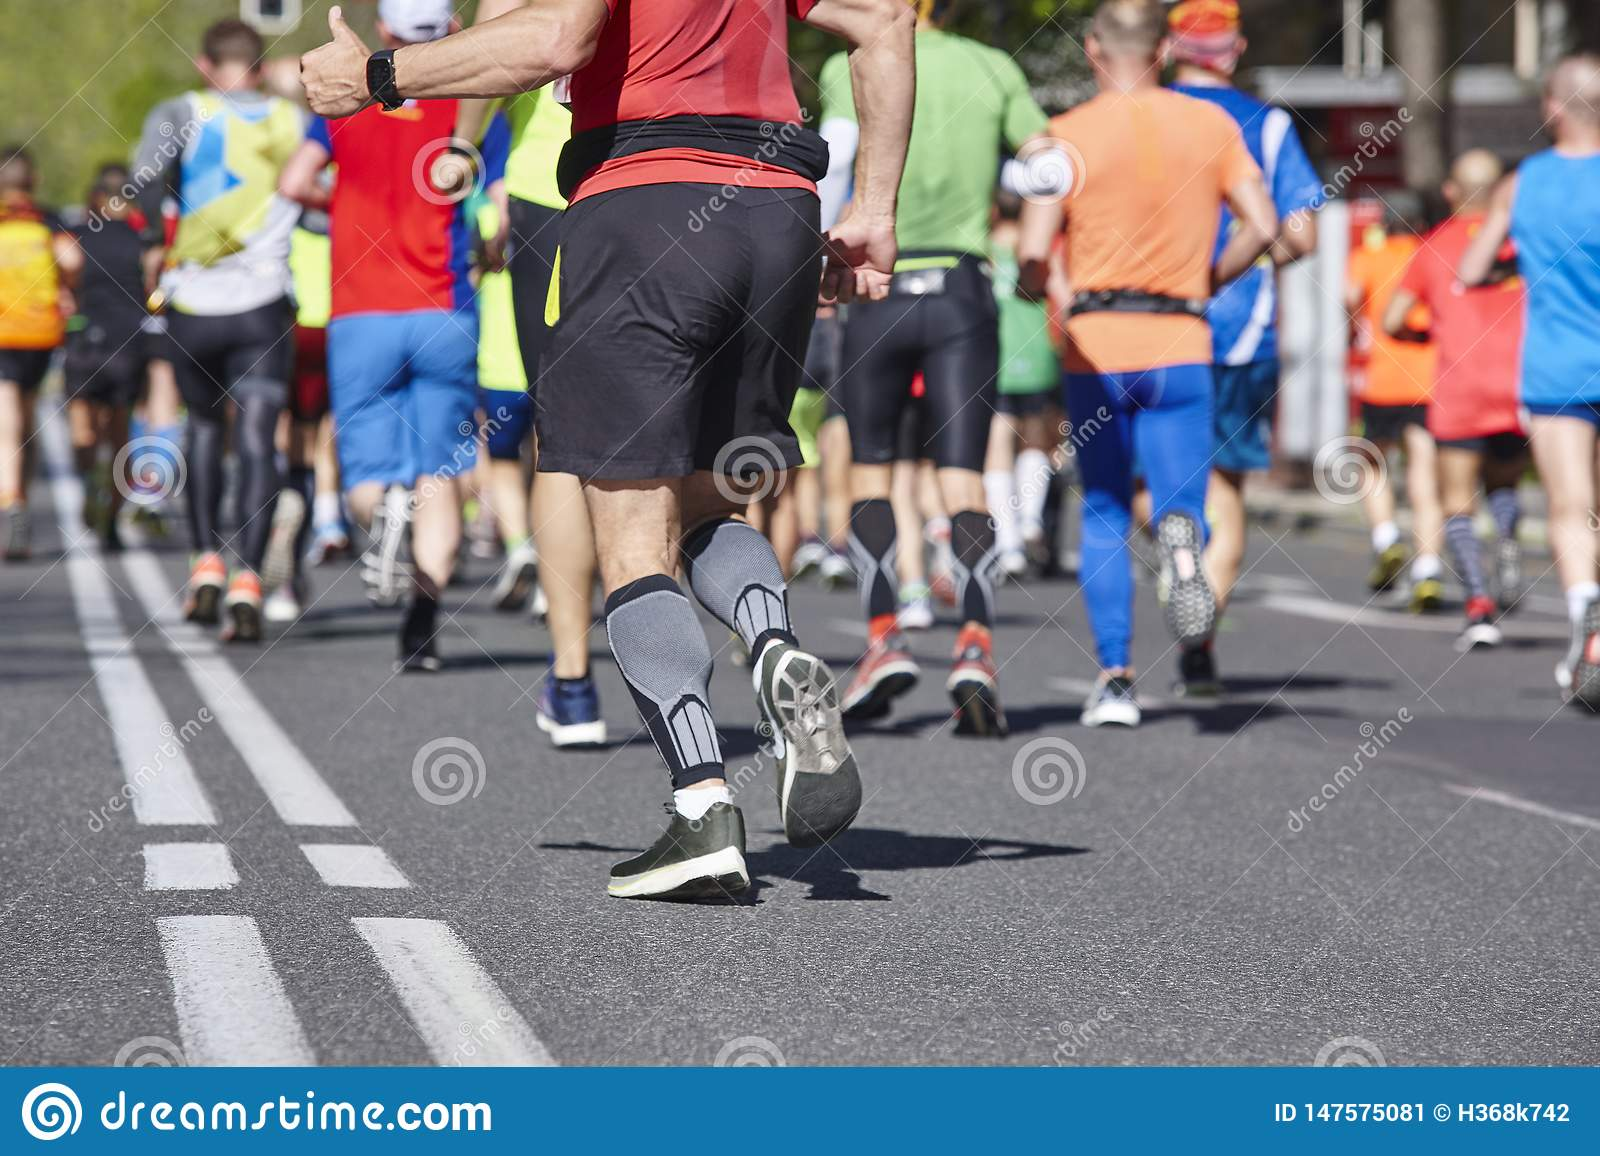 7984da31c06da Marathon Runners On The Street. Healthy Lifestyle. Athletes Stock ...